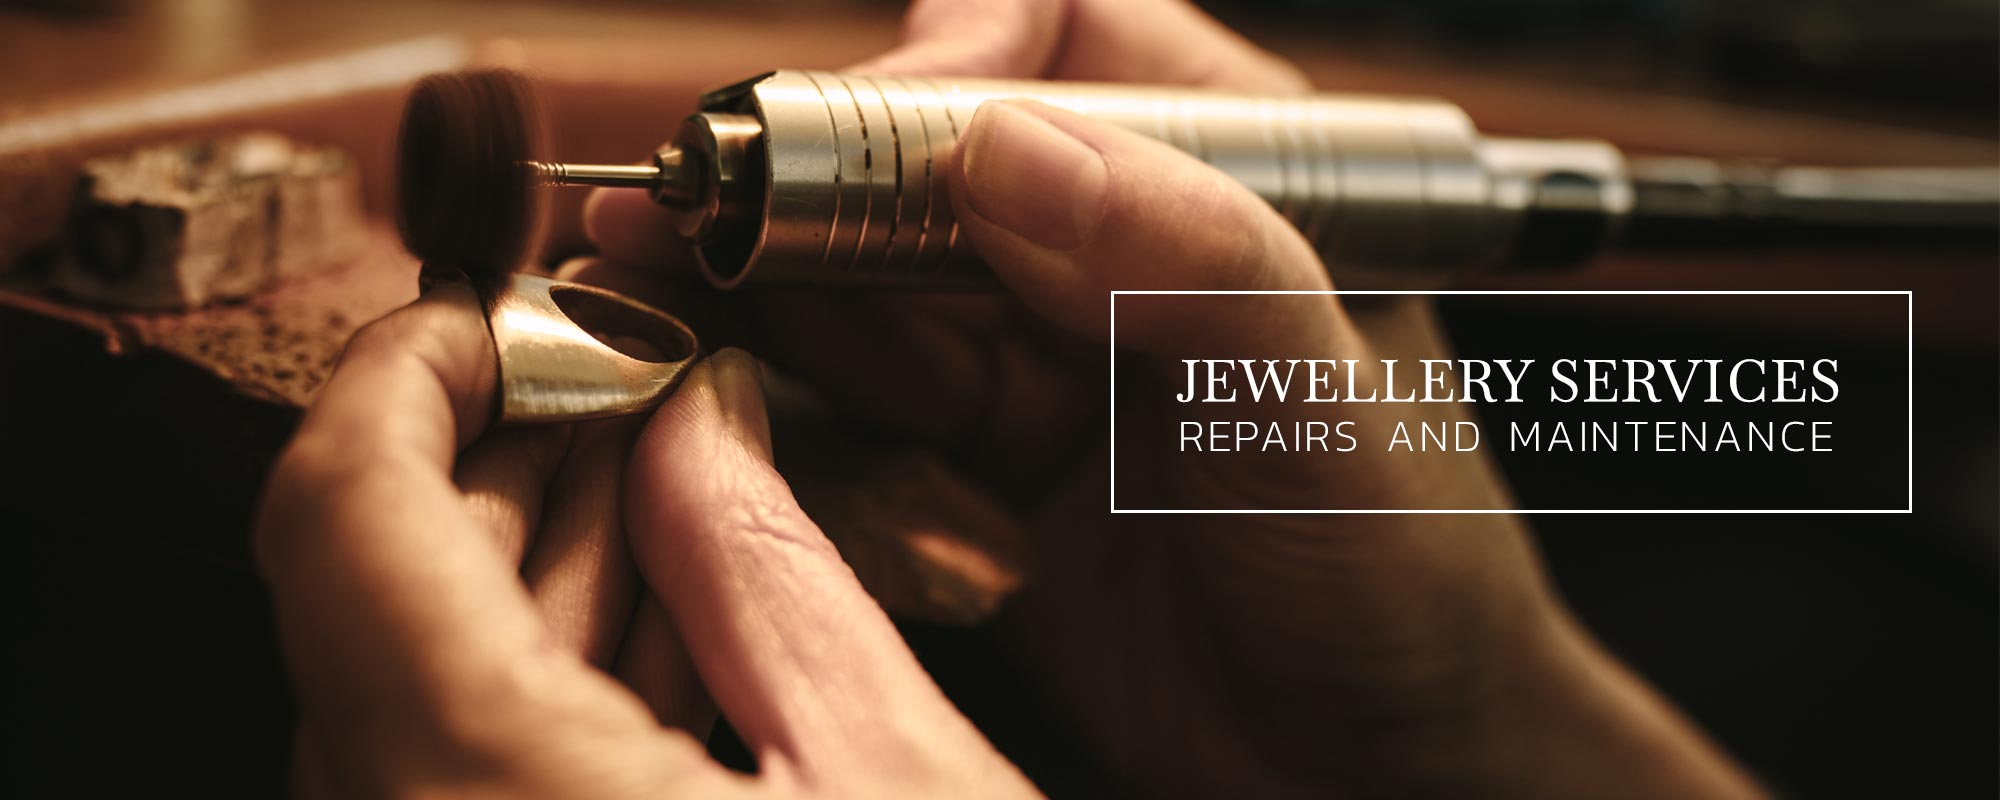 Jewellery Repair Services Available At Mt. Ommaney Showcase Jewellers